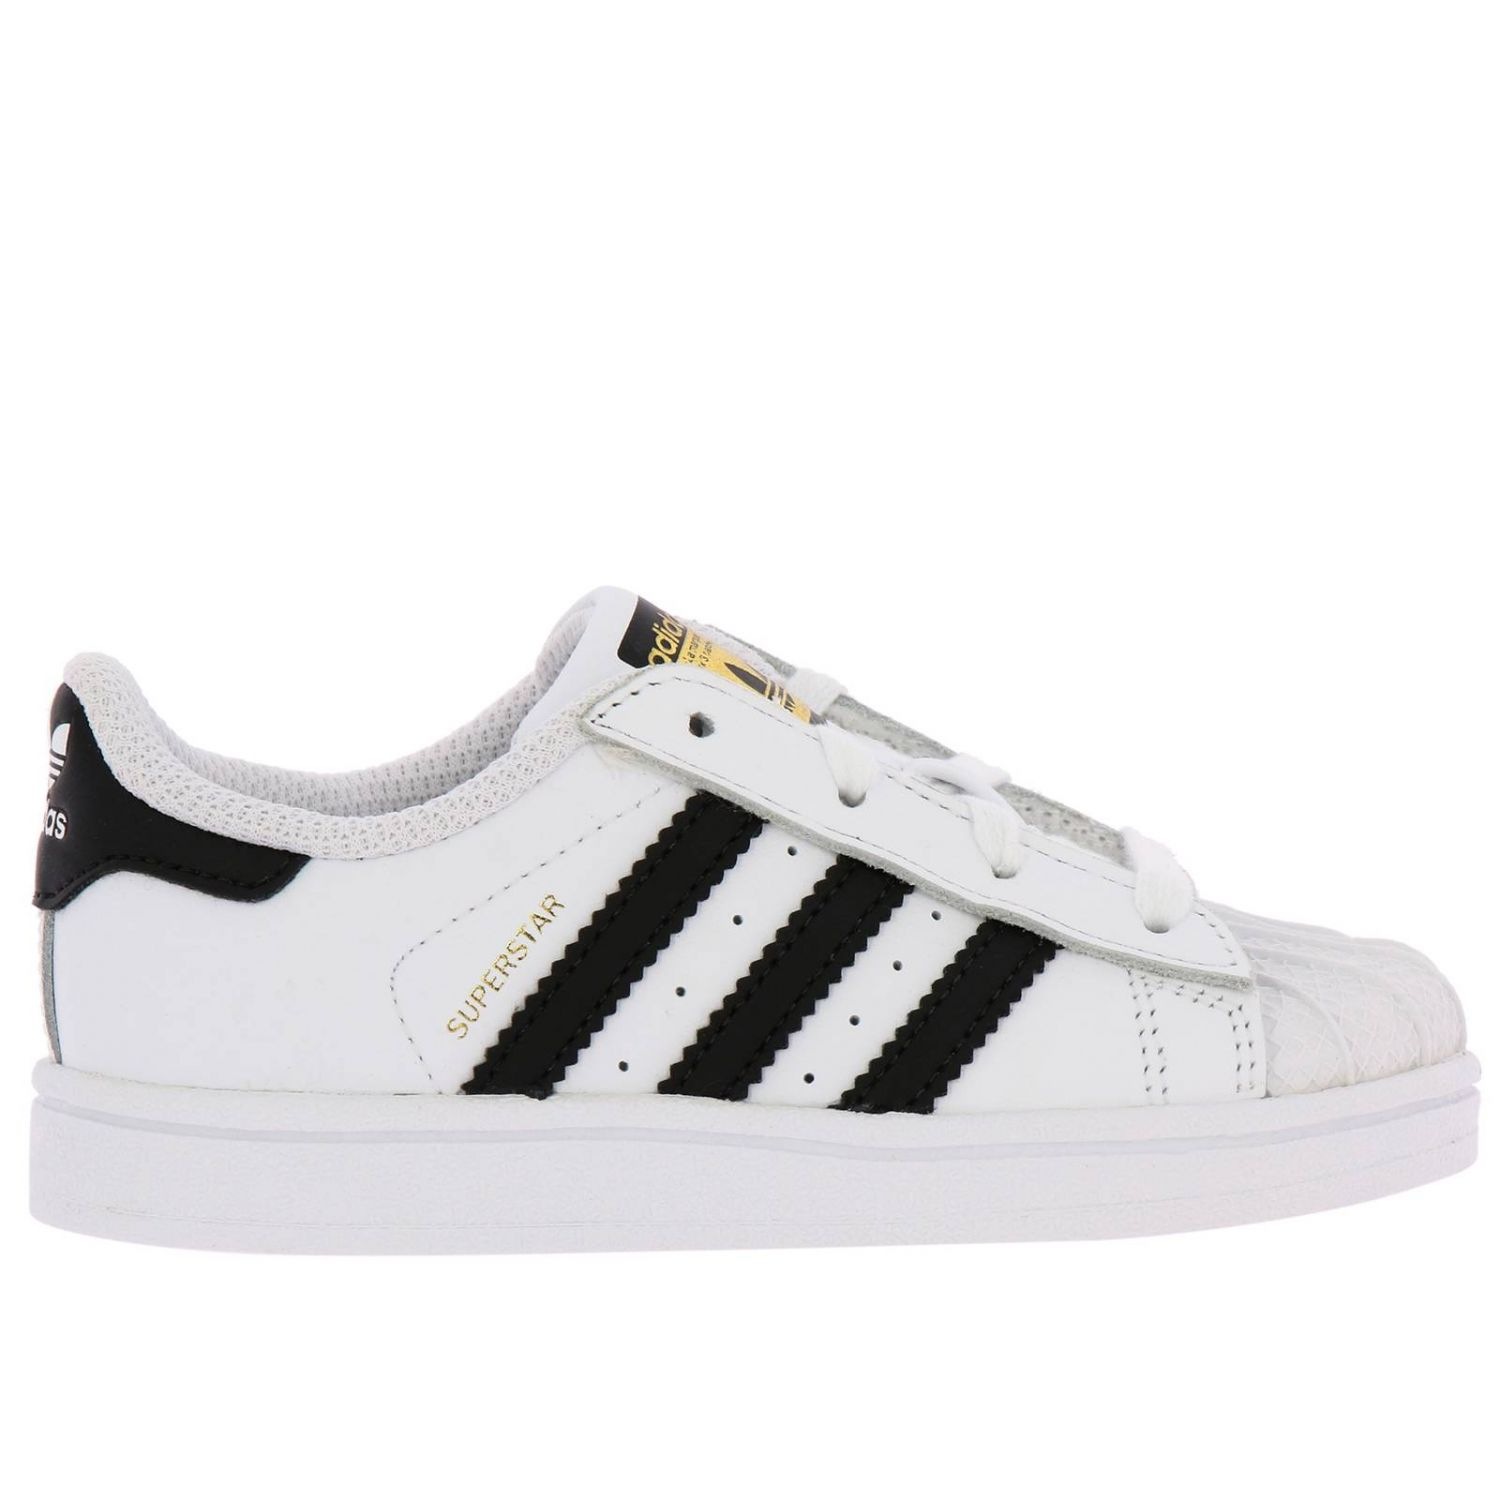 Adidas Originals Superstar Sneakers in leather with 3 contrasting stripes white 1